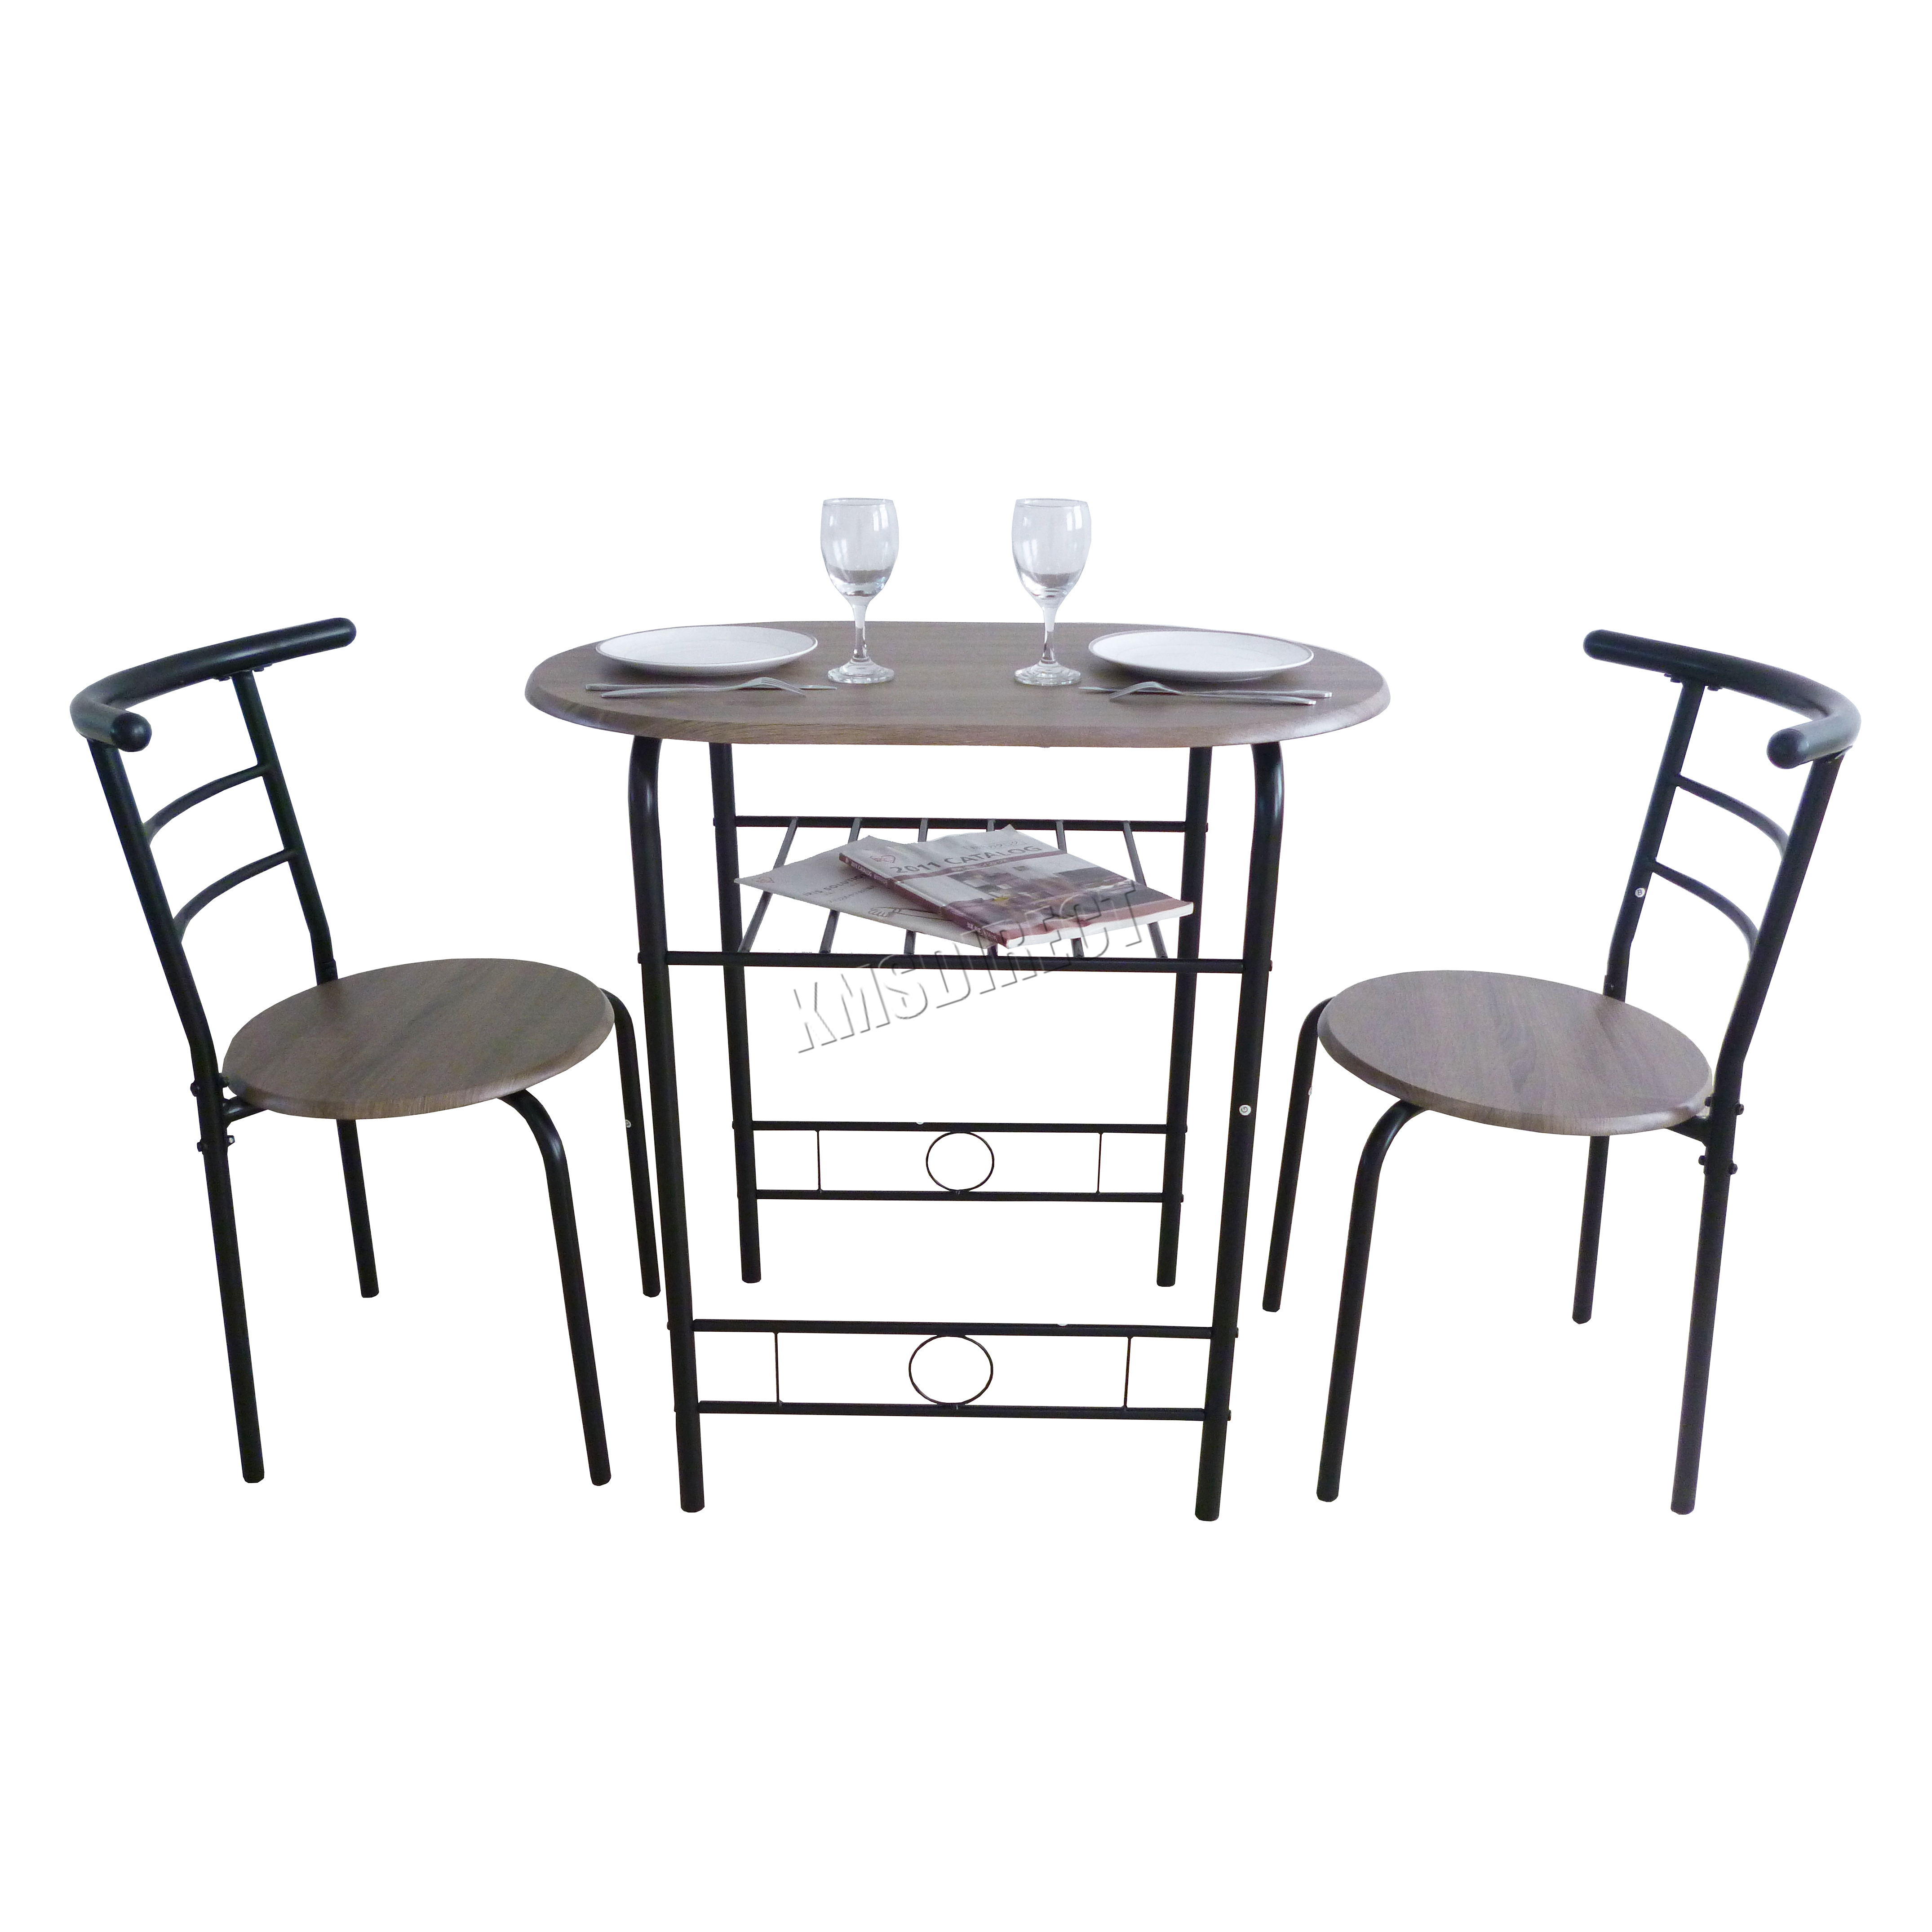 Bench Chairs Kitchen Tables And Chairs Ebay Free Kitchen: FoxHunter Compact Dining Table Breakfast Bar 2 Chair Set